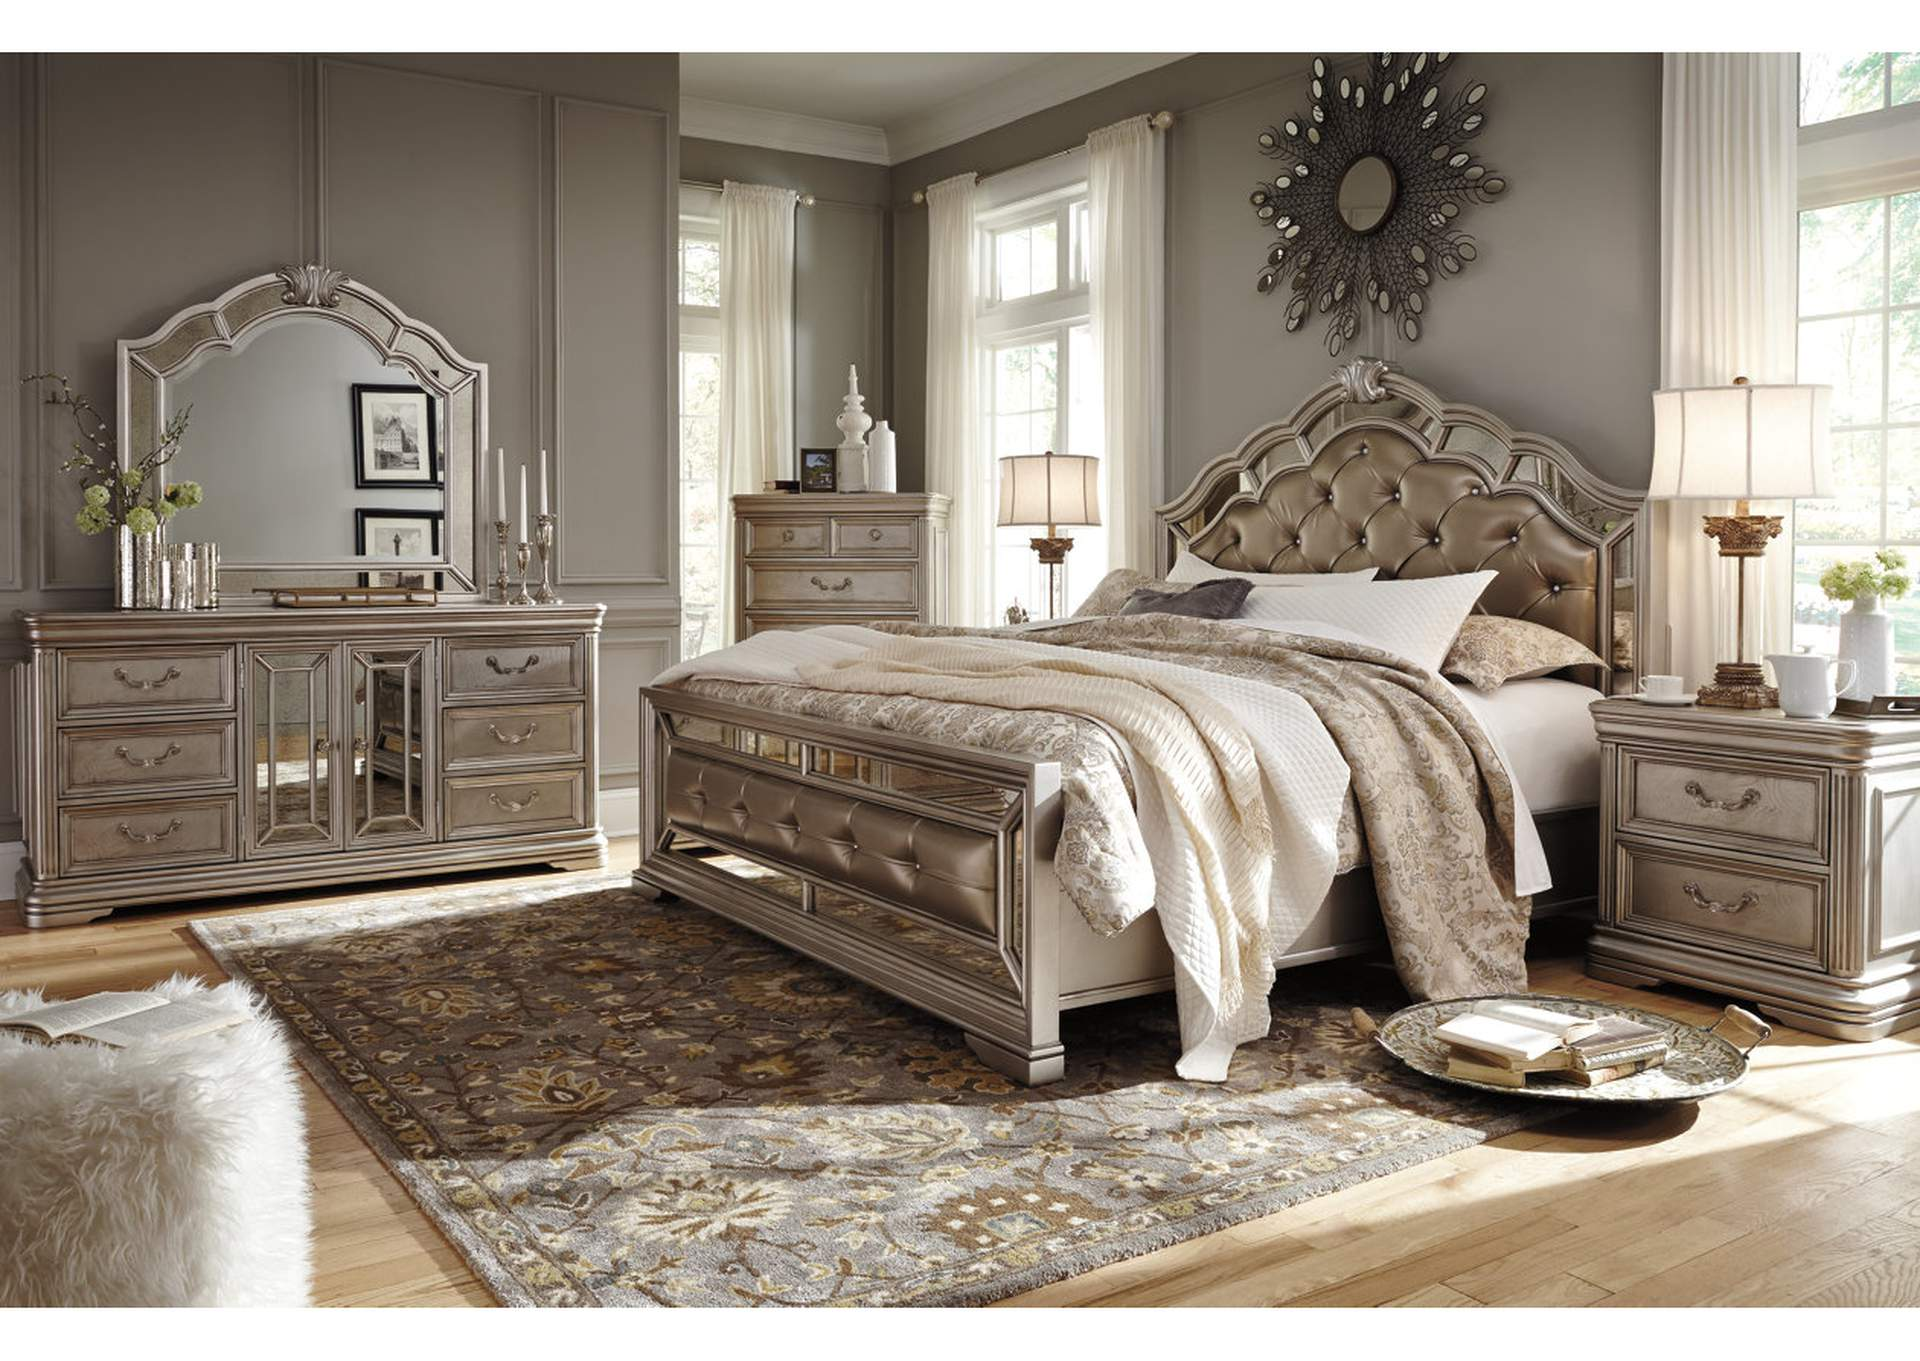 Birlanny Silver Queen Upholstered Bed w/Dresser, Mirror & Drawer Chest,Signature Design By Ashley